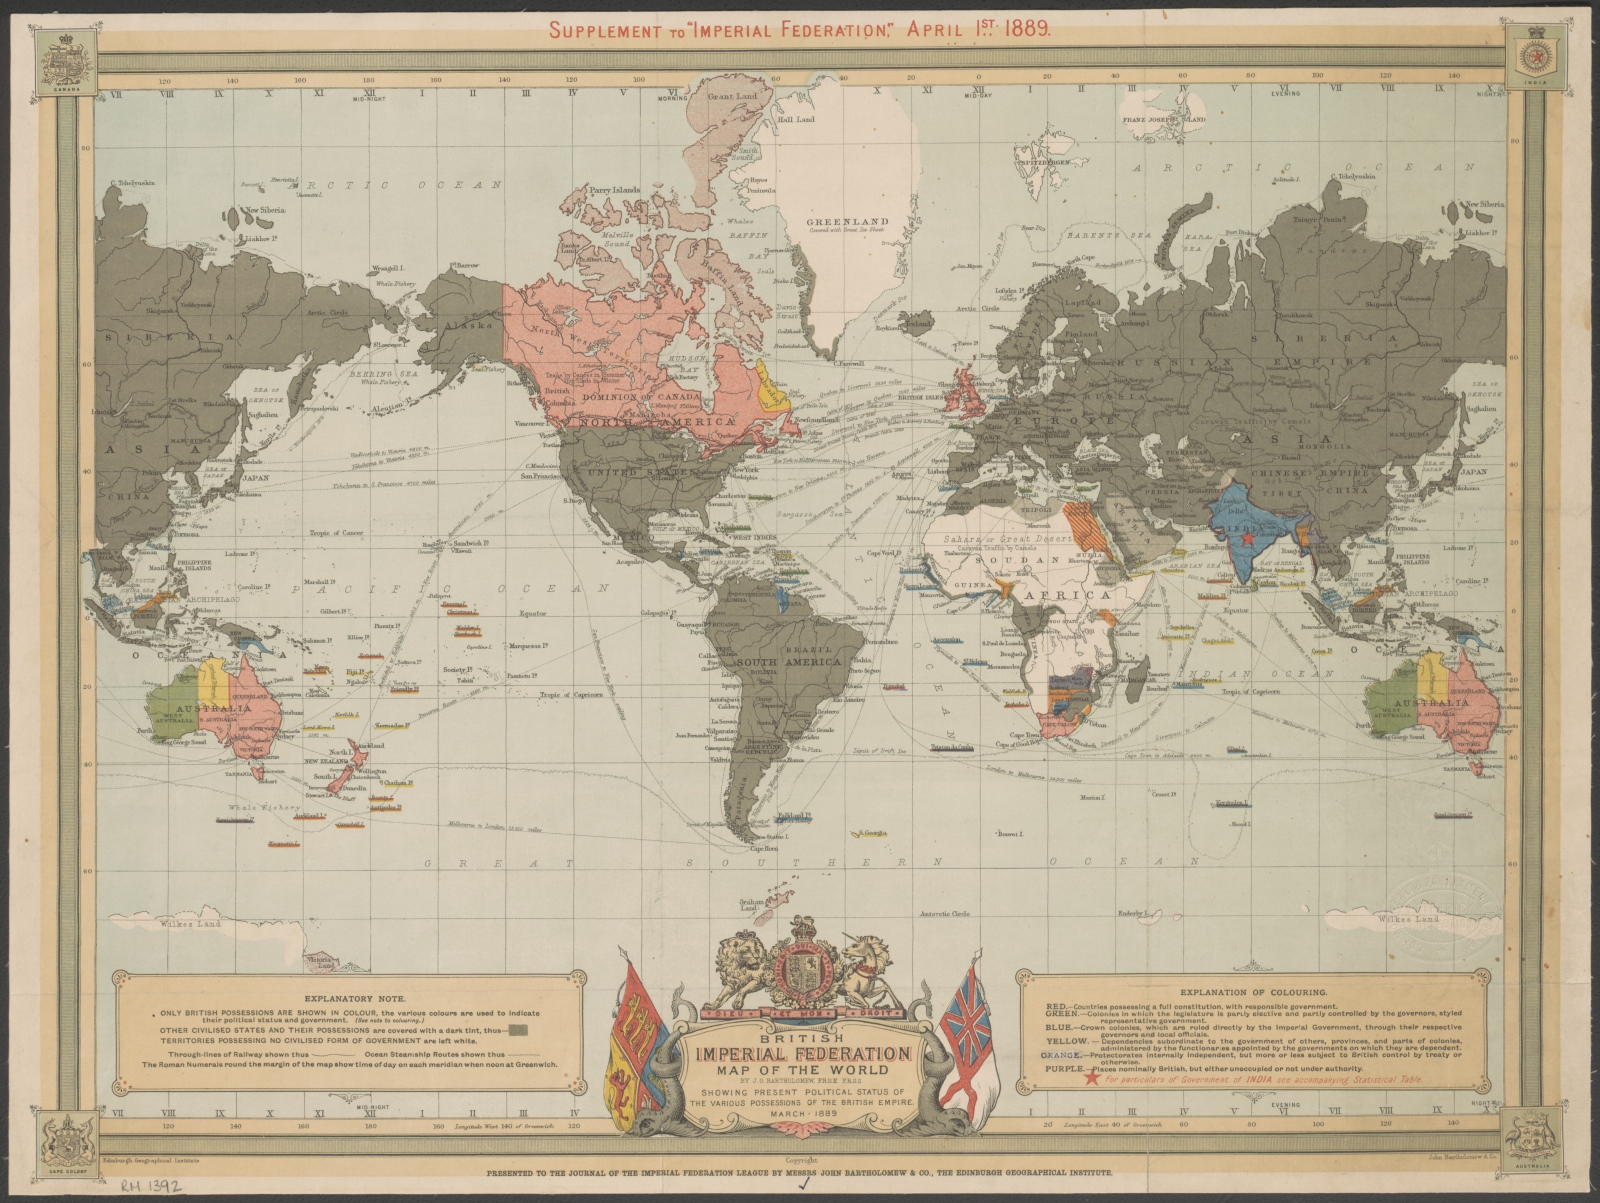 The commonwealth games national library of australia jg bartholomew british imperial federation map of the world showing present political status of the various possessions of the british empire gumiabroncs Choice Image